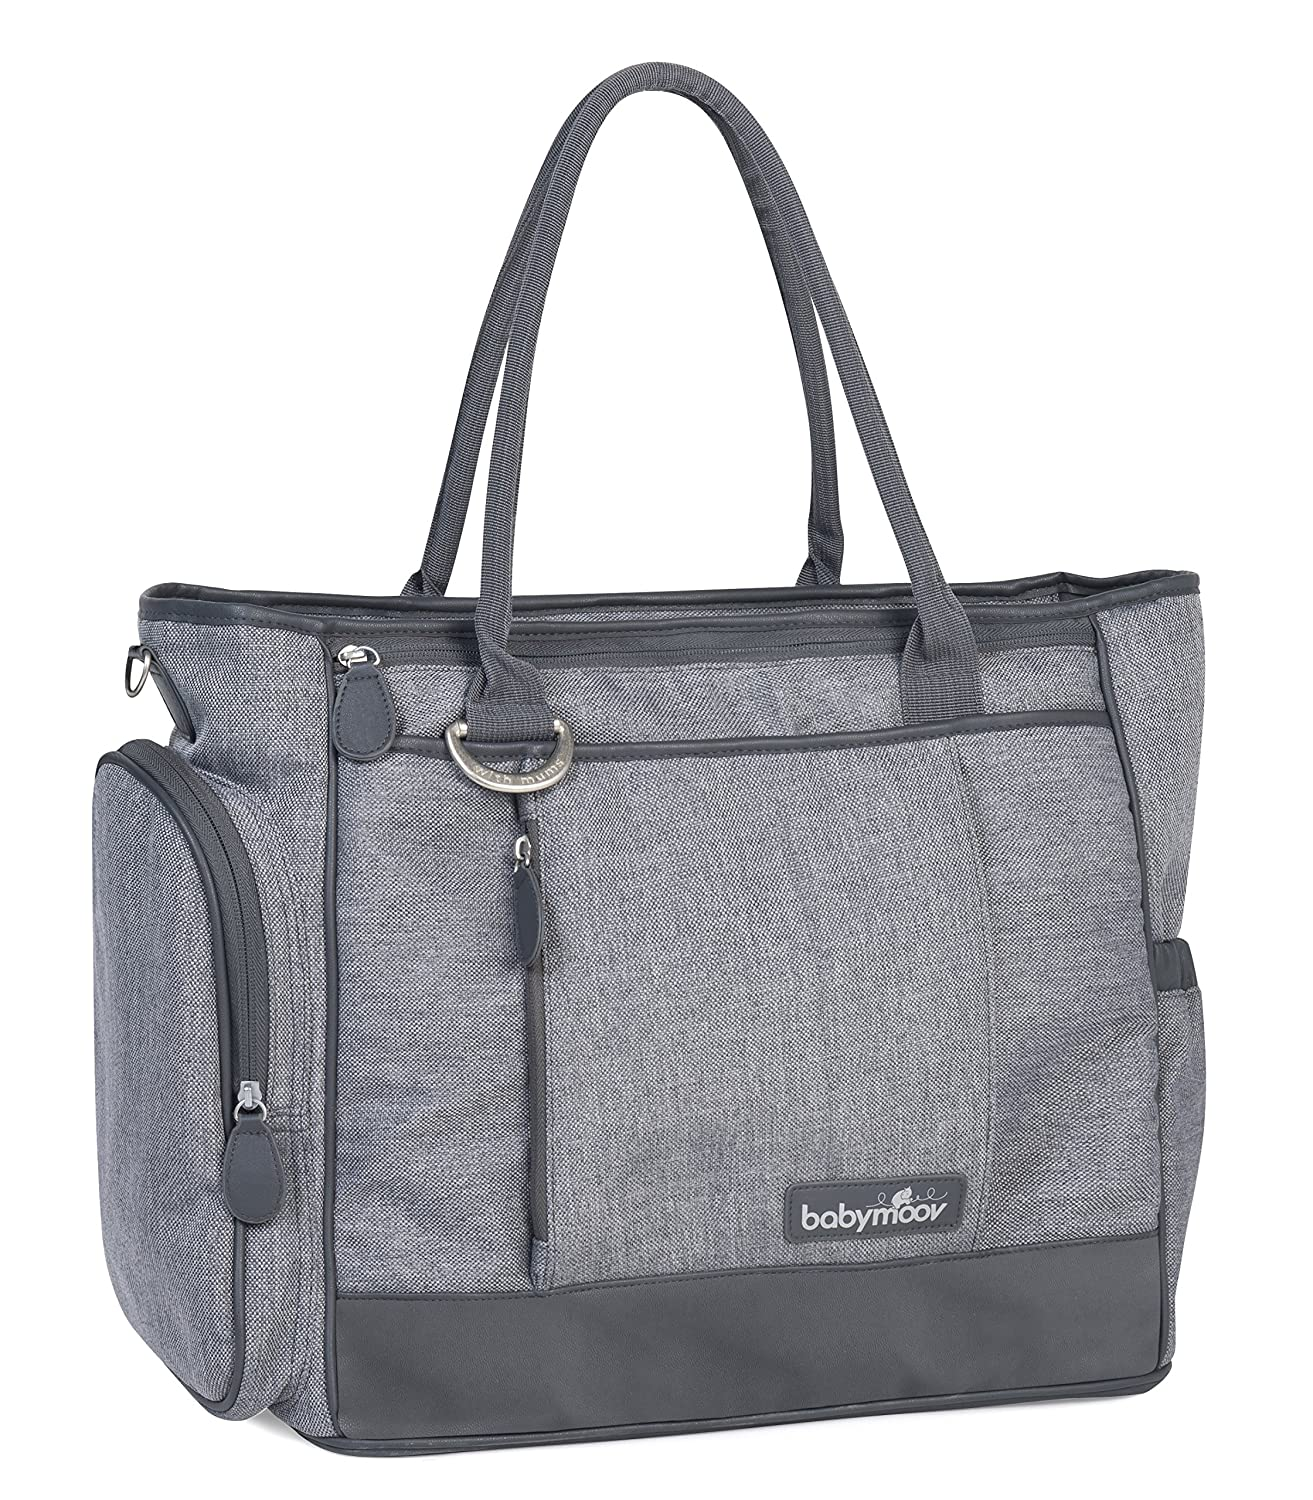 Babymoov Essential Diaper Bag | Multi-Function & Lightweight with 14 Pockets and 6 Accessories Included for Organized Storage